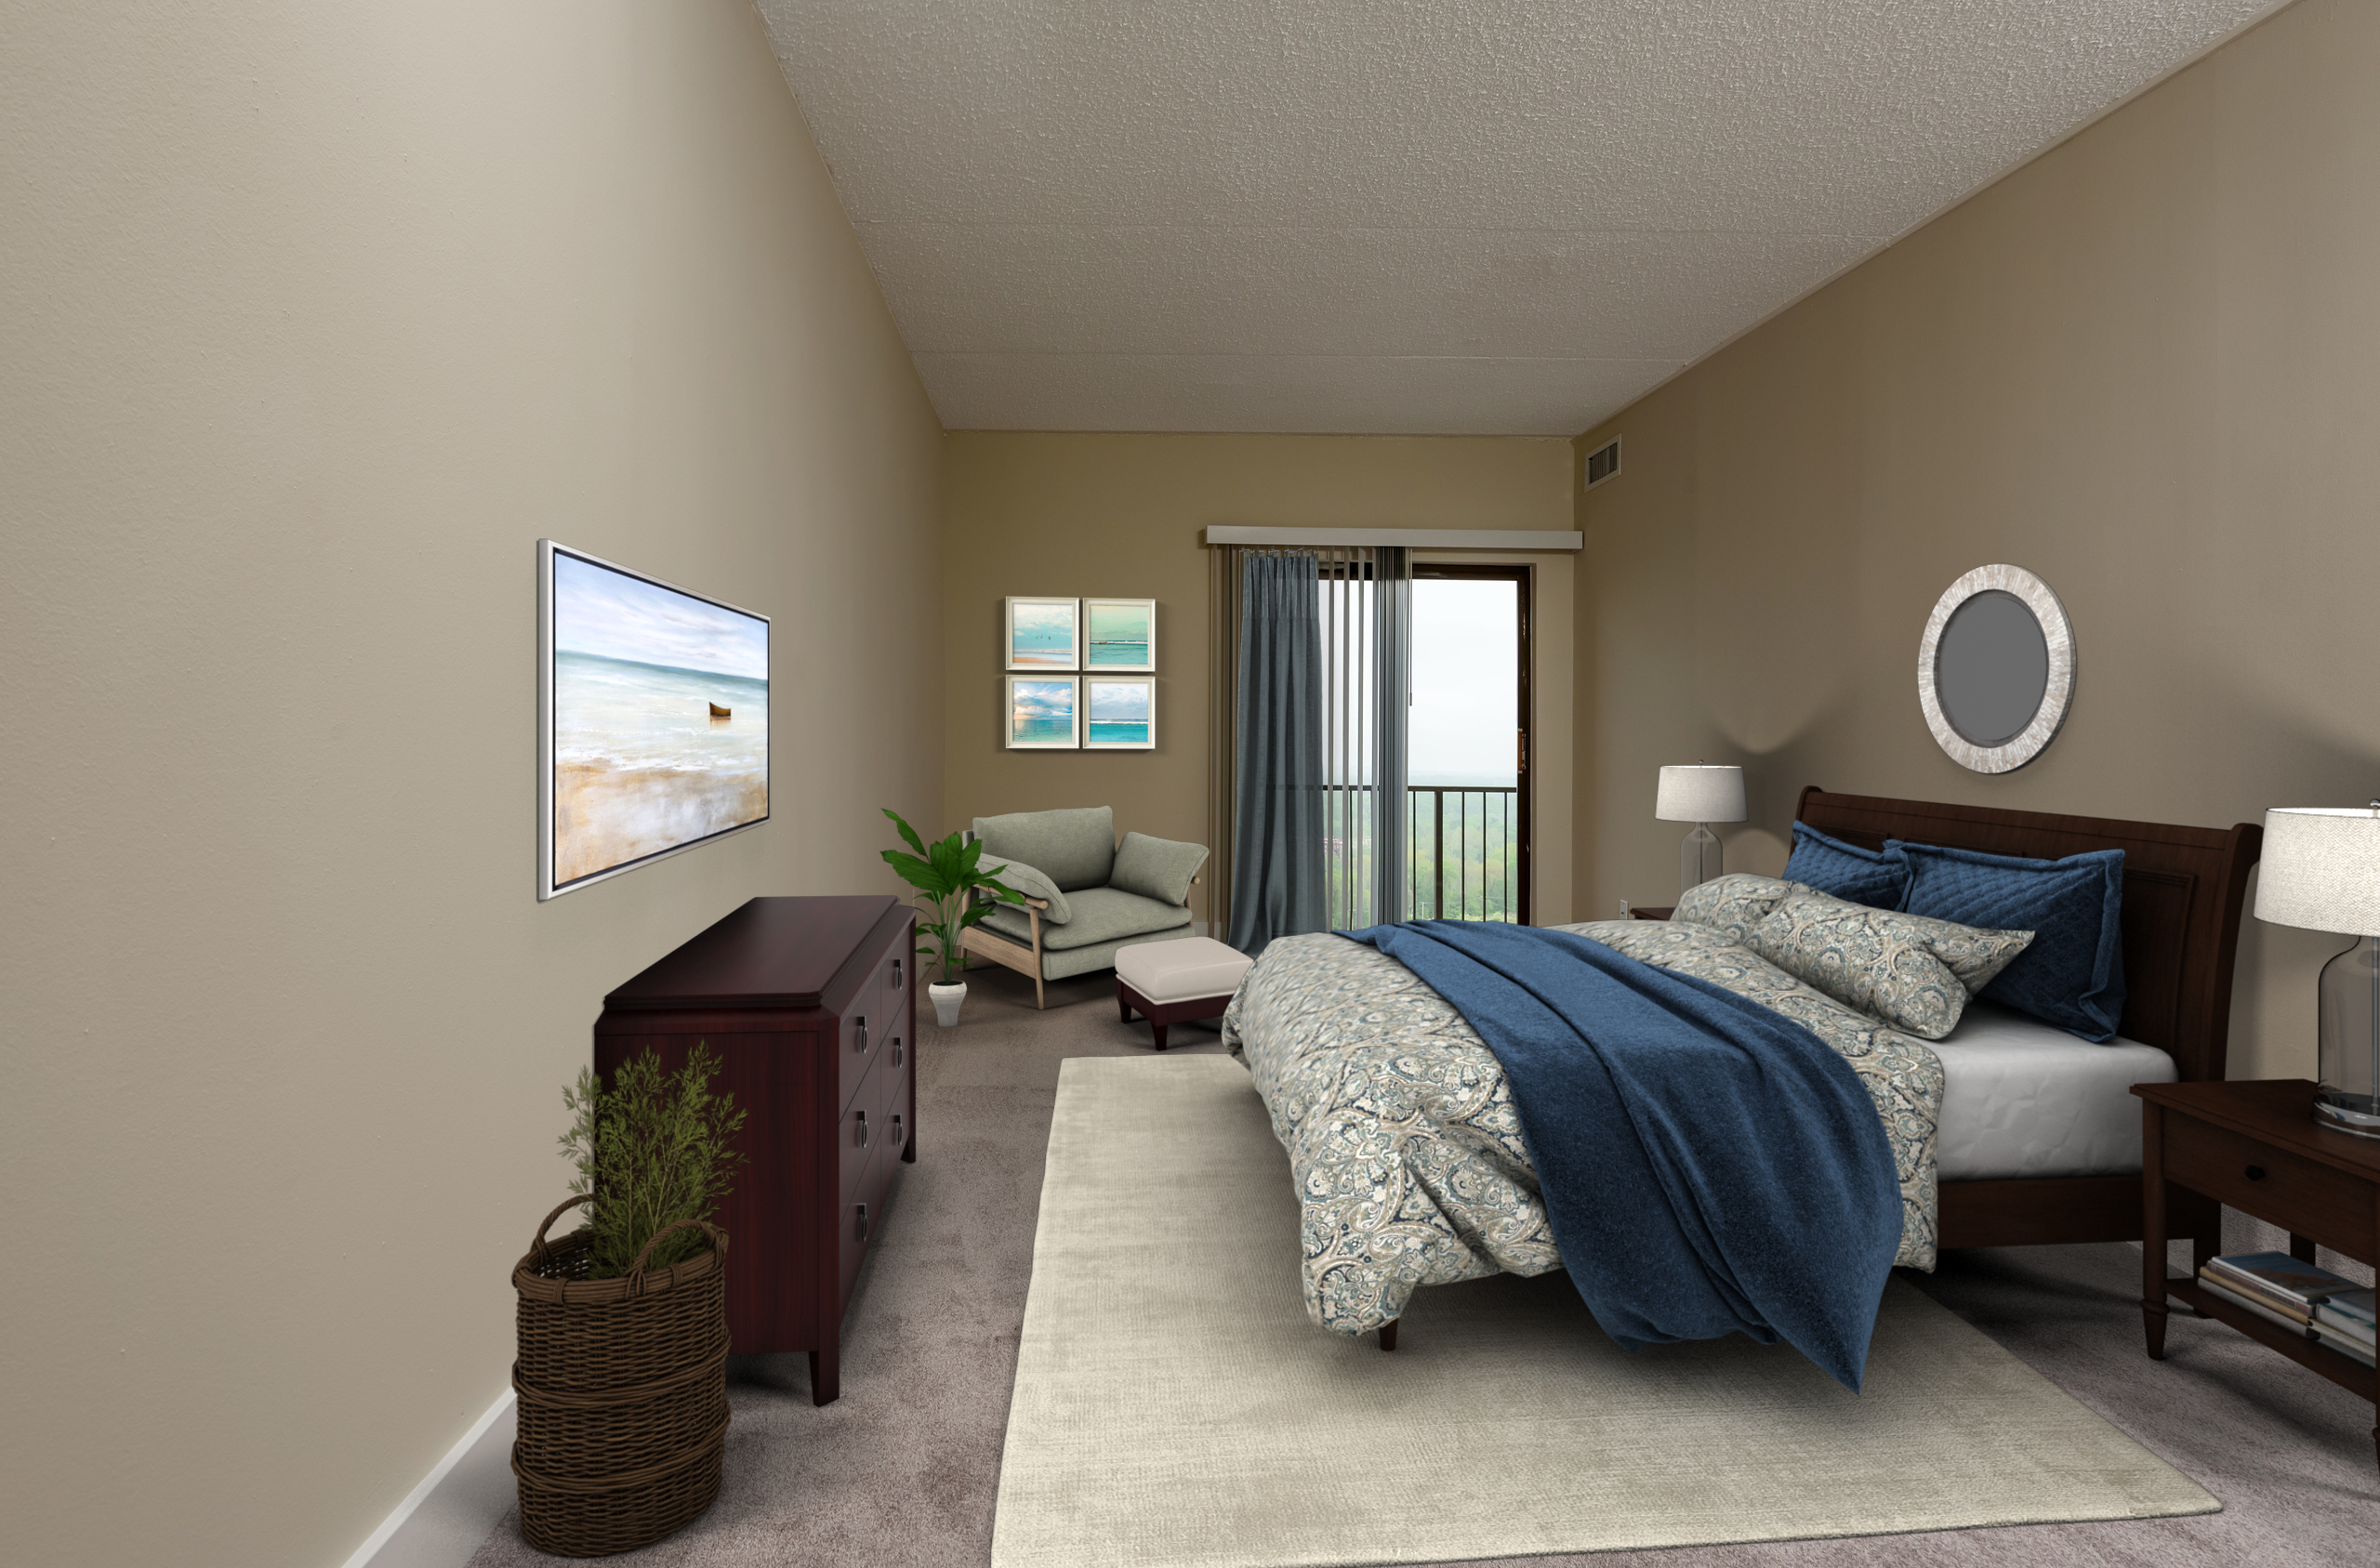 King of Prussia apartment bedroom at Valley Forge Towers